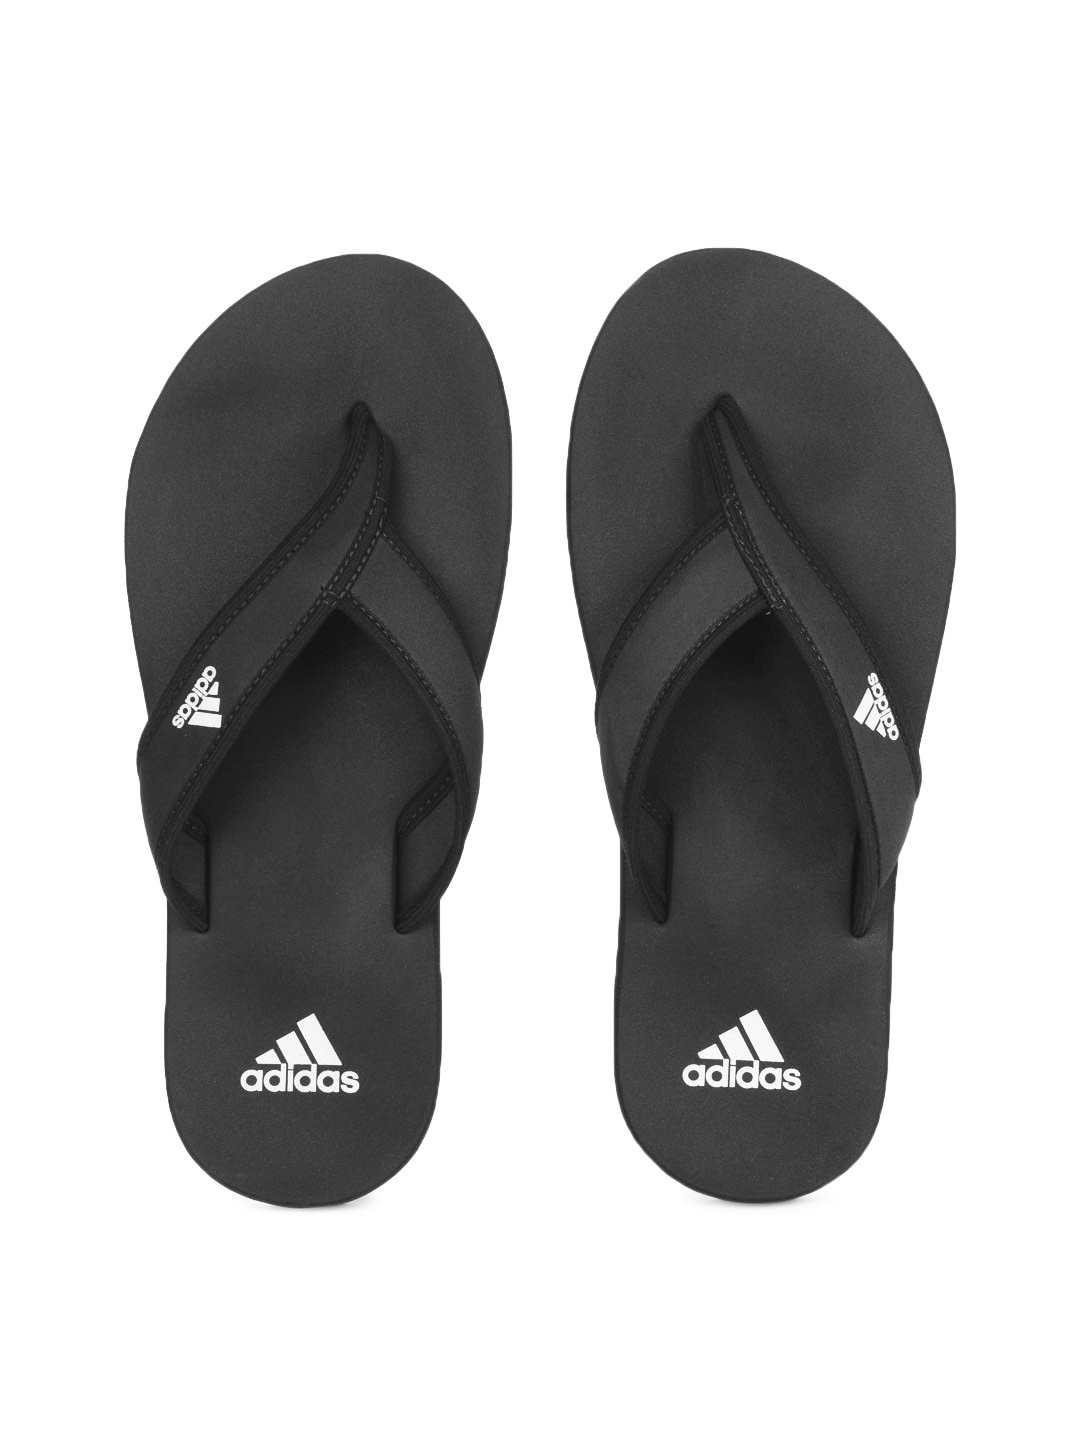 9106b1072bc1 adidas sandals for men in india